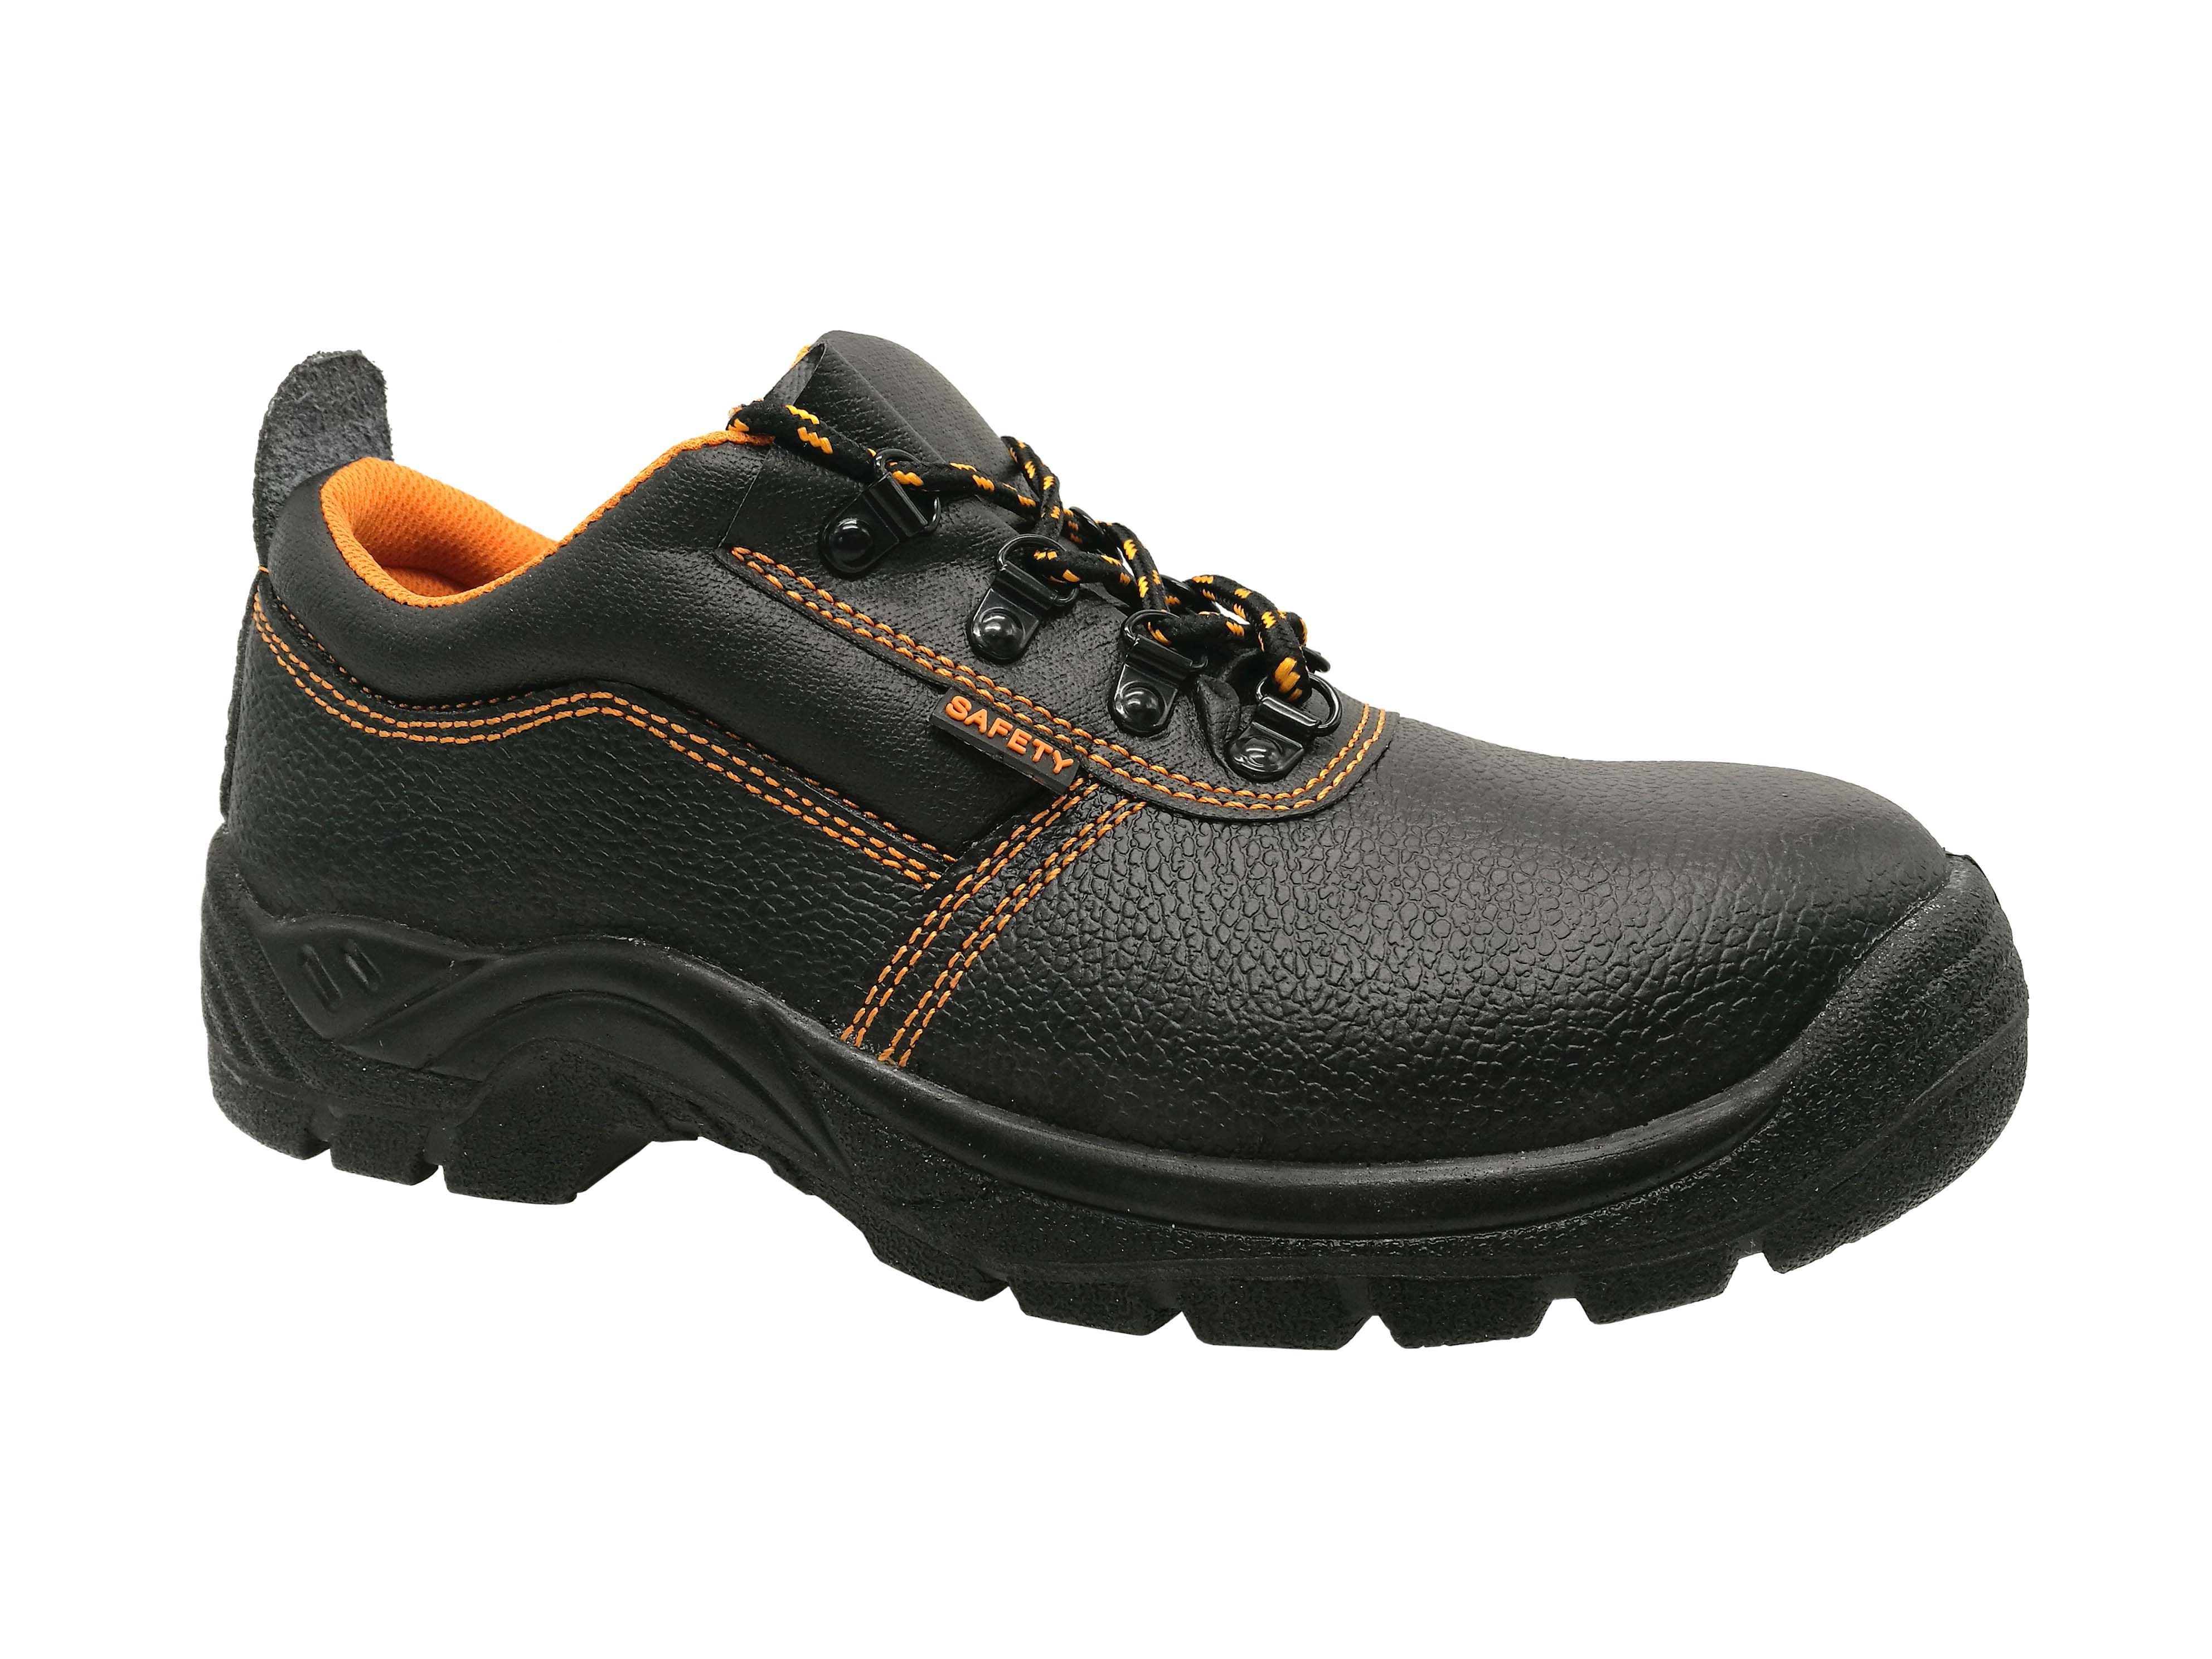 db11a215 BEST SELLER Low-cut Steel Toe Safety Shoes For Men GSI-149 /SF-237 ...